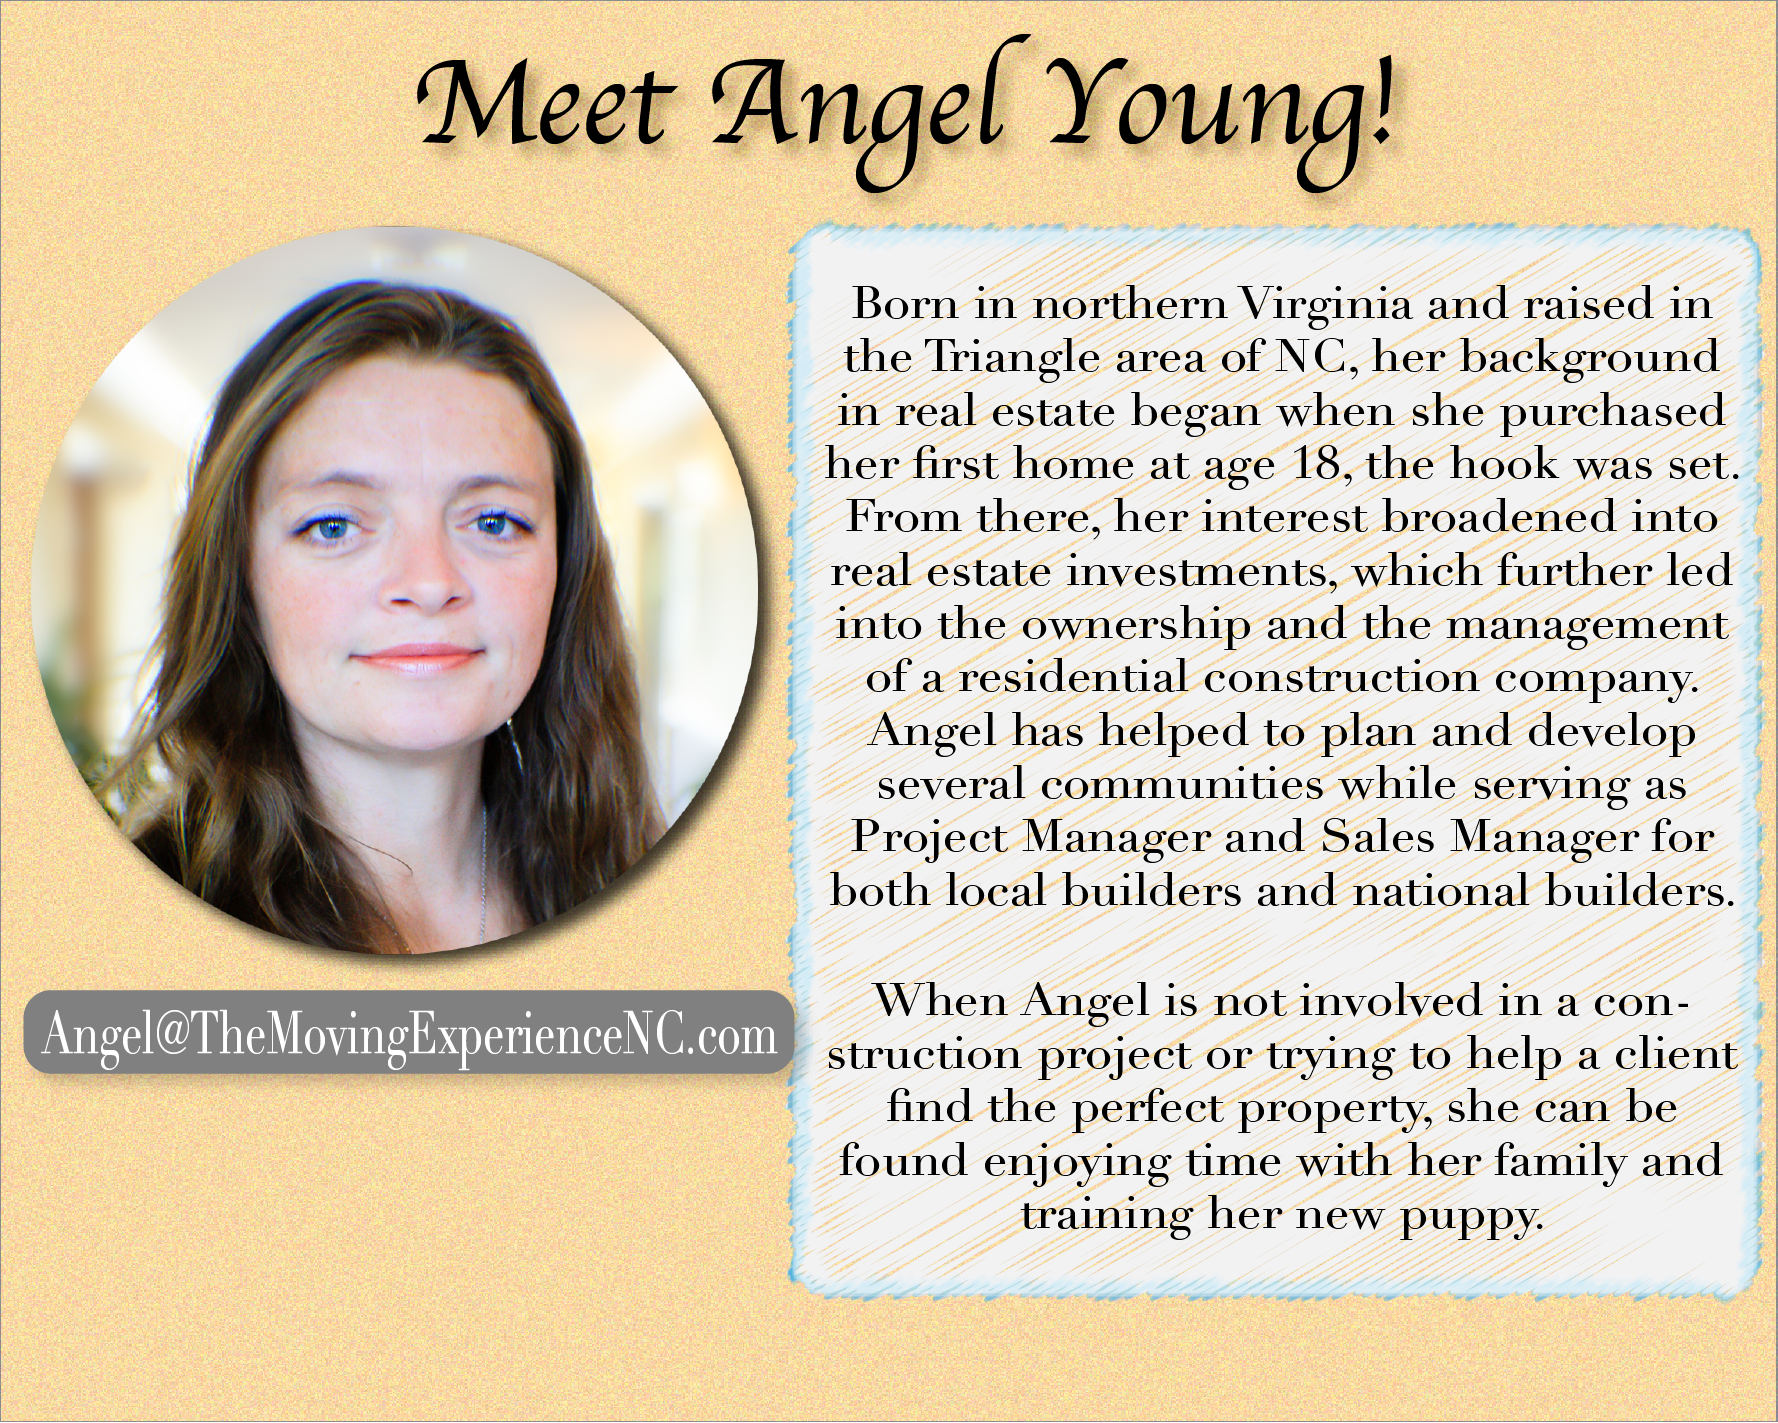 Our newest team member, Angel Young, joins us after a successful career in residential construction.